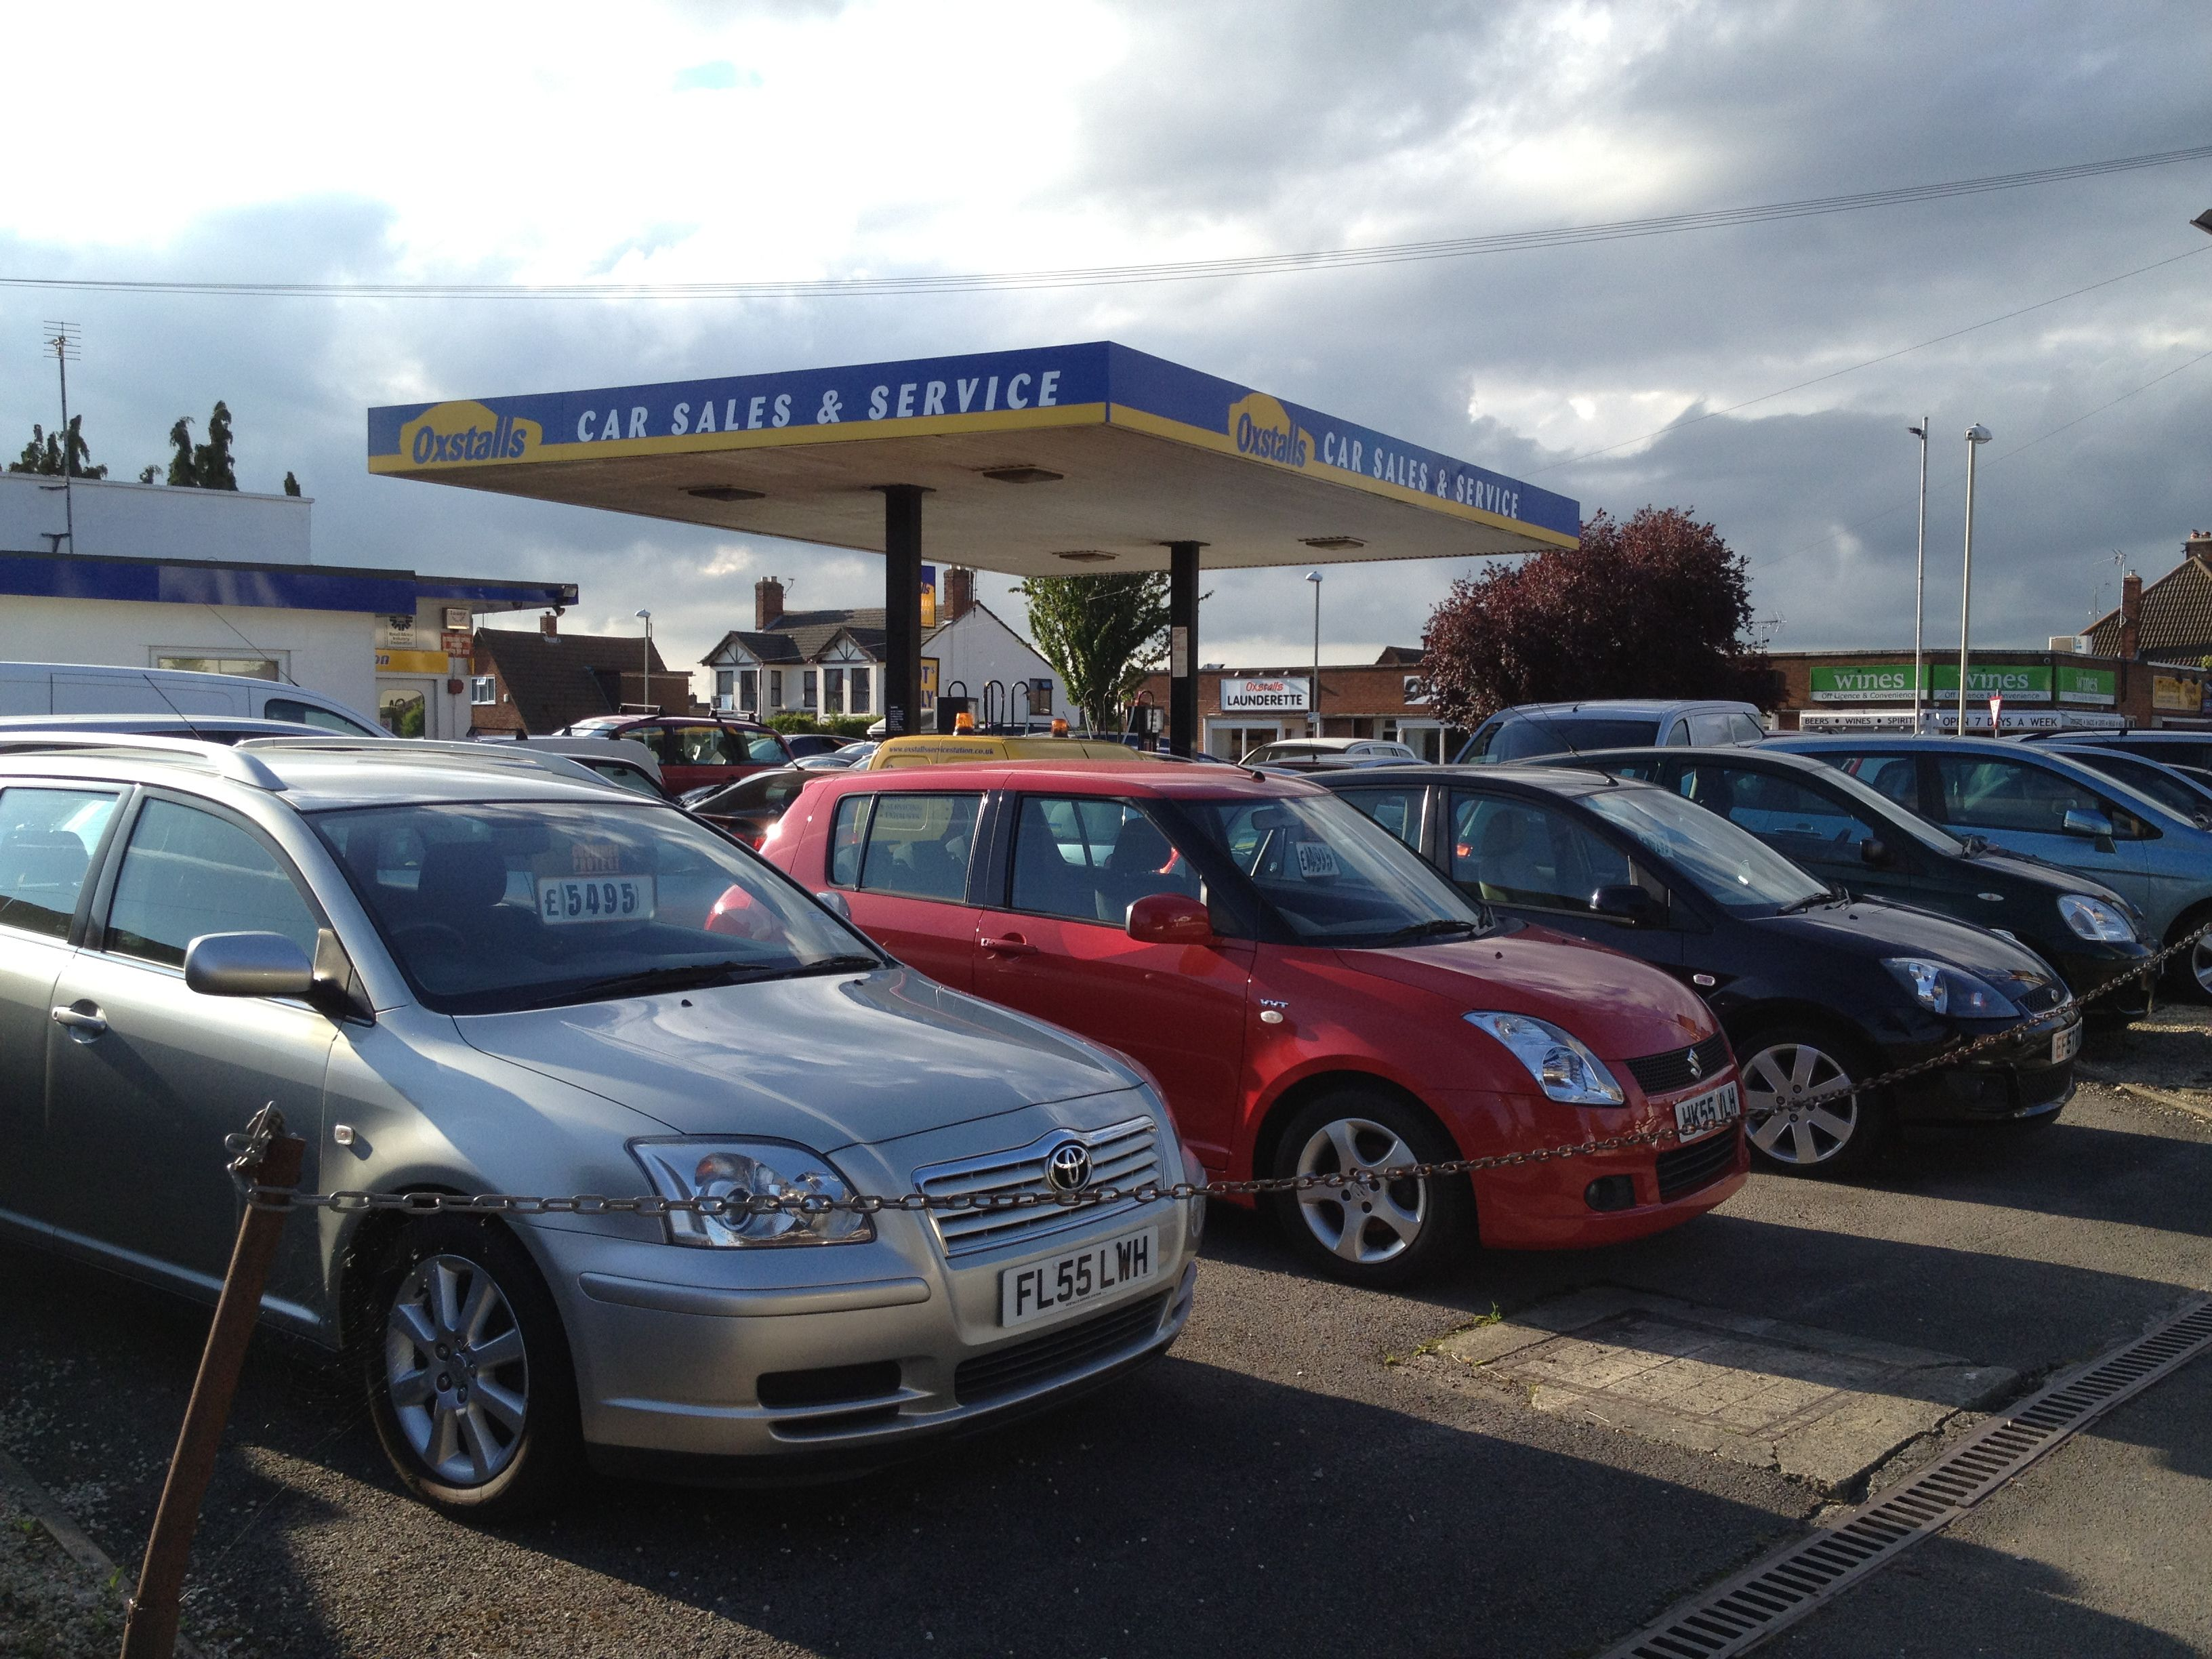 Cars for Sale Classifieds Zimbabwe Lovely Fresh Second Hand Cars for Sale Allowed to My Website within This